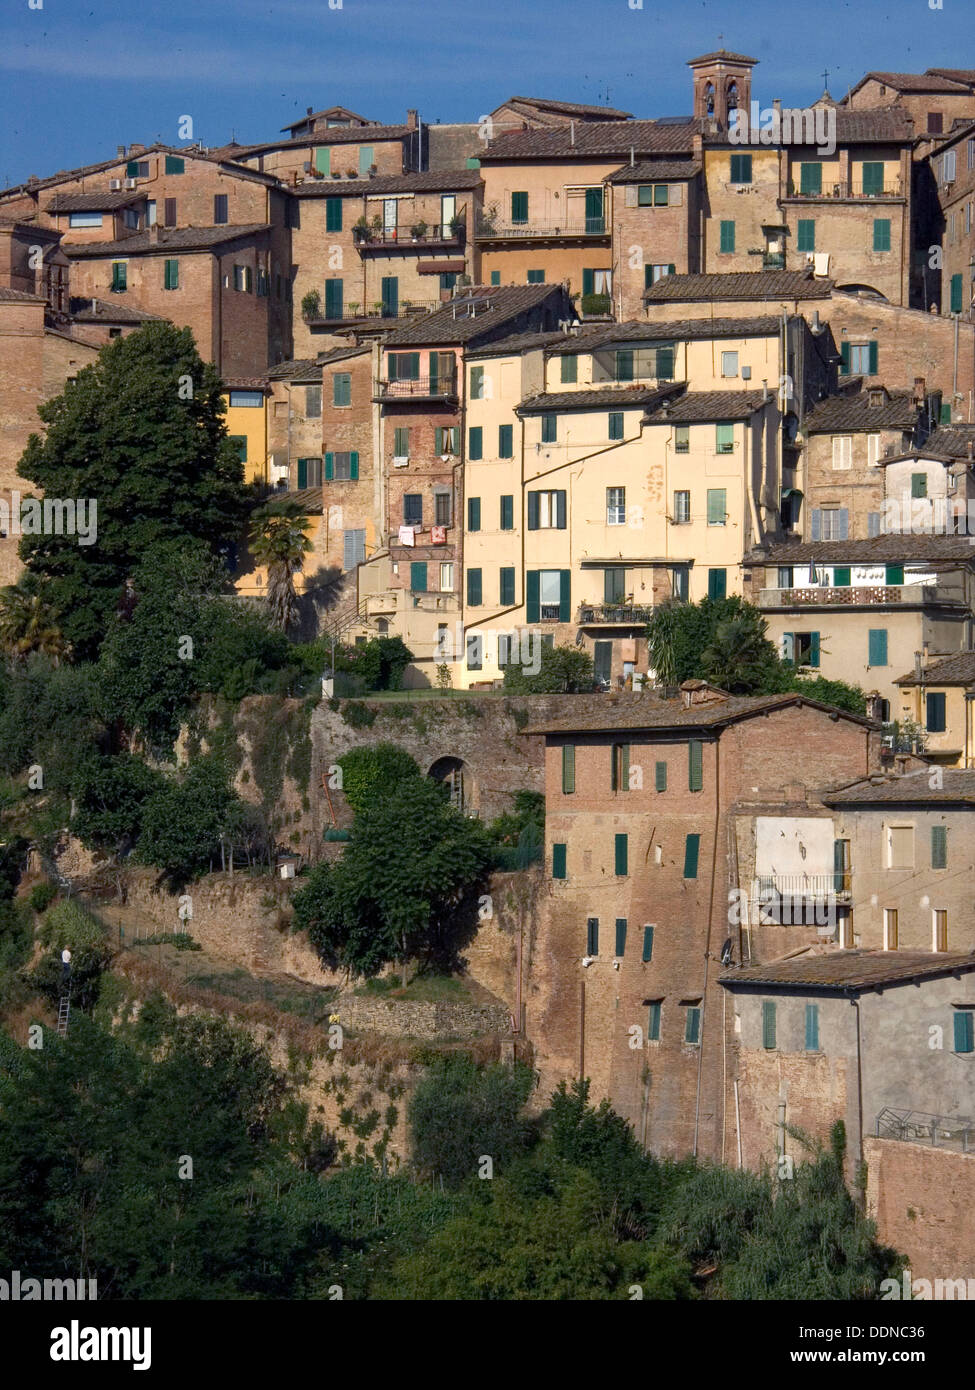 Closely crowded house in the heart of Old Siena, Italy - Stock Image